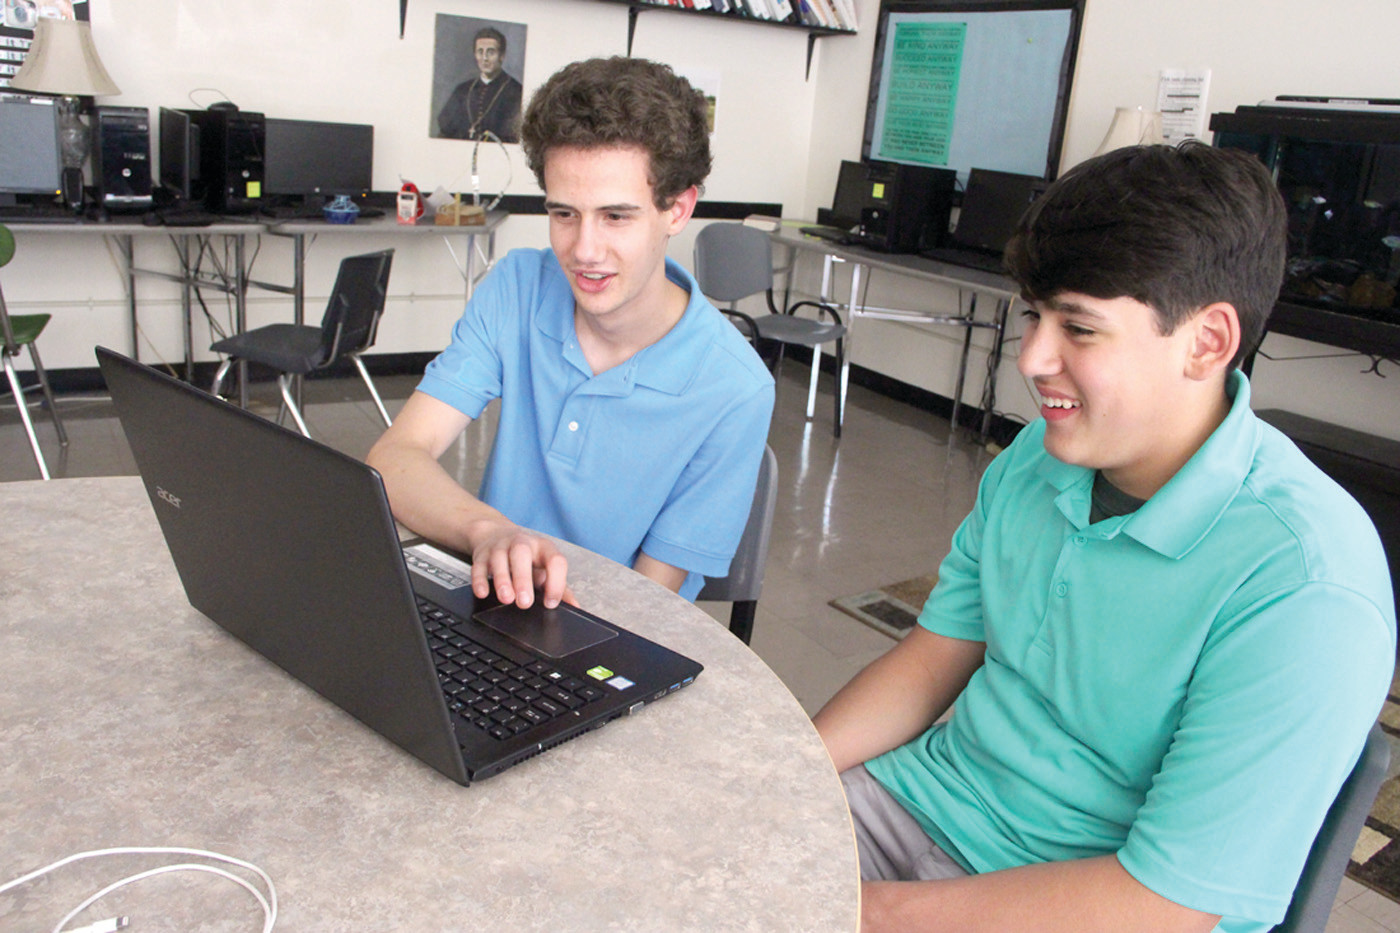 A HELPING HAND: Student mentor Mike Carlino works with RJ Robitaille on an assignment.